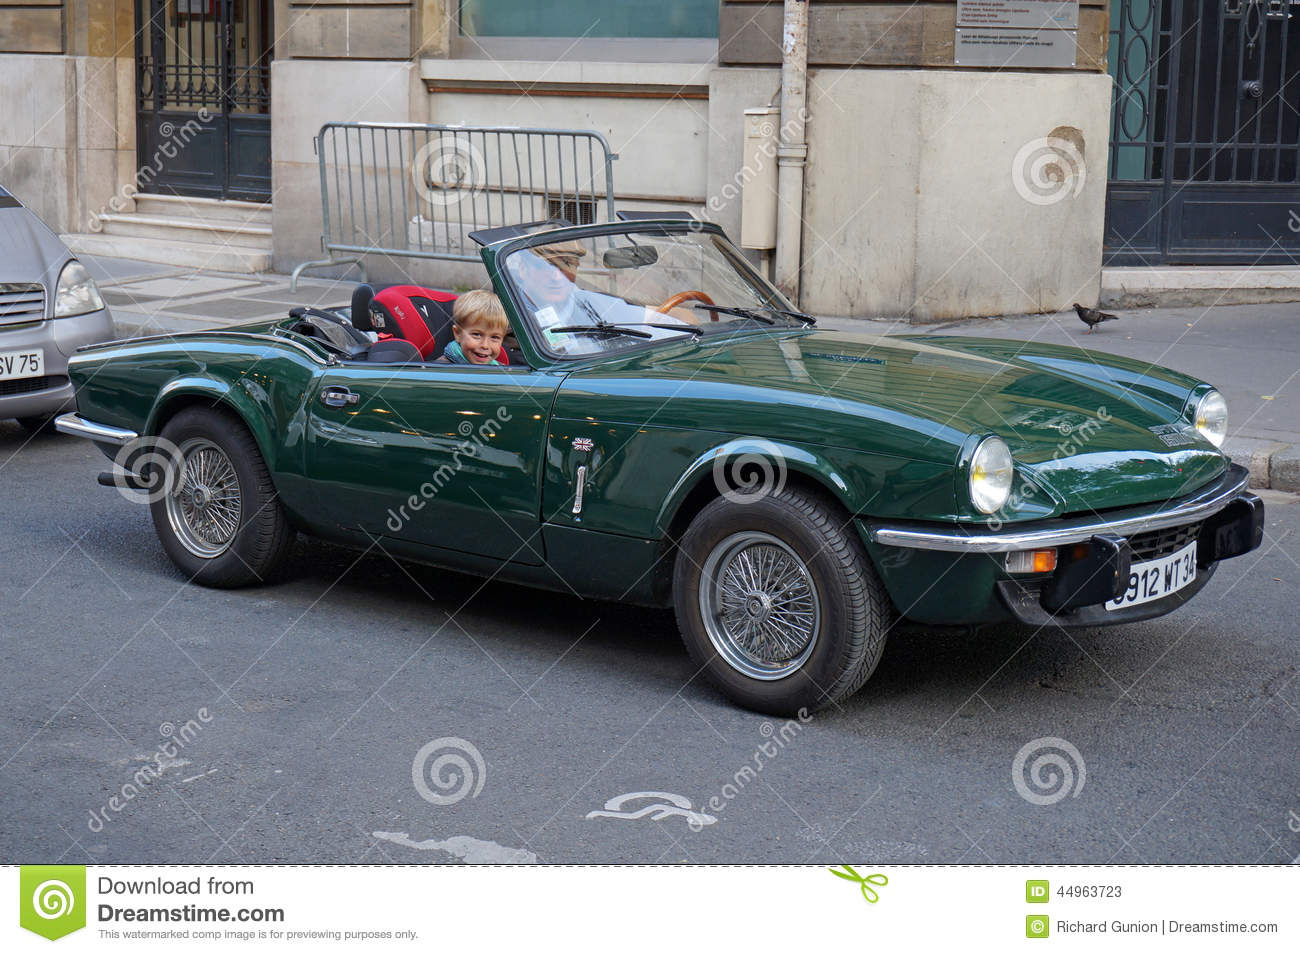 Photo of vintage british triumph sports car in paris france on 9/15/14